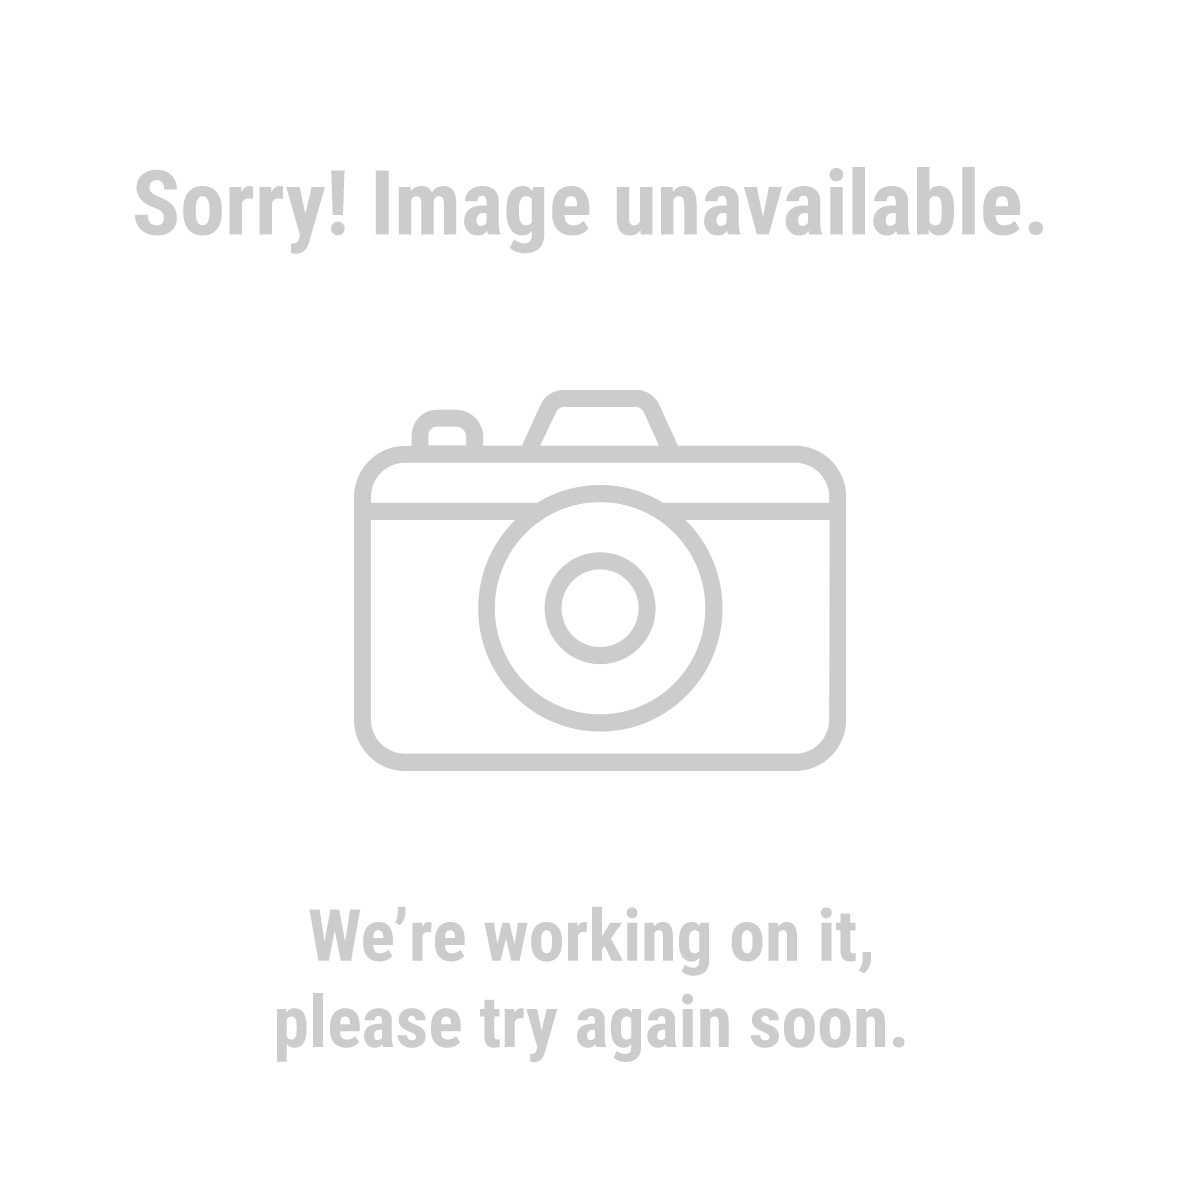 Drill Master 60625 Angle Grinder, 4-1/2""